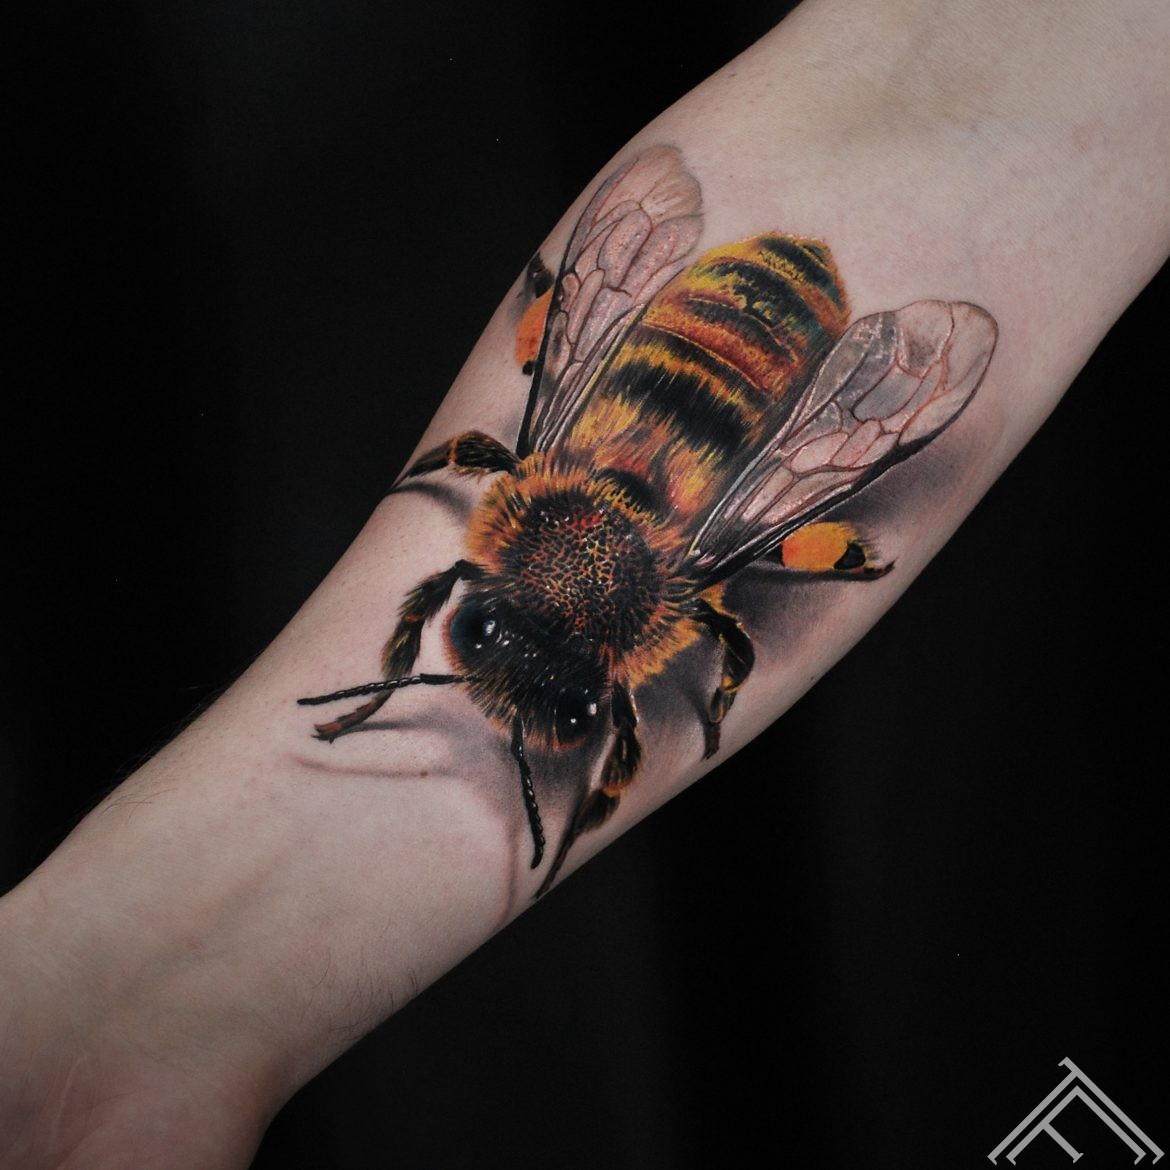 bee-bite-tattoo-tattoofrequency-riga-art-marispavlo